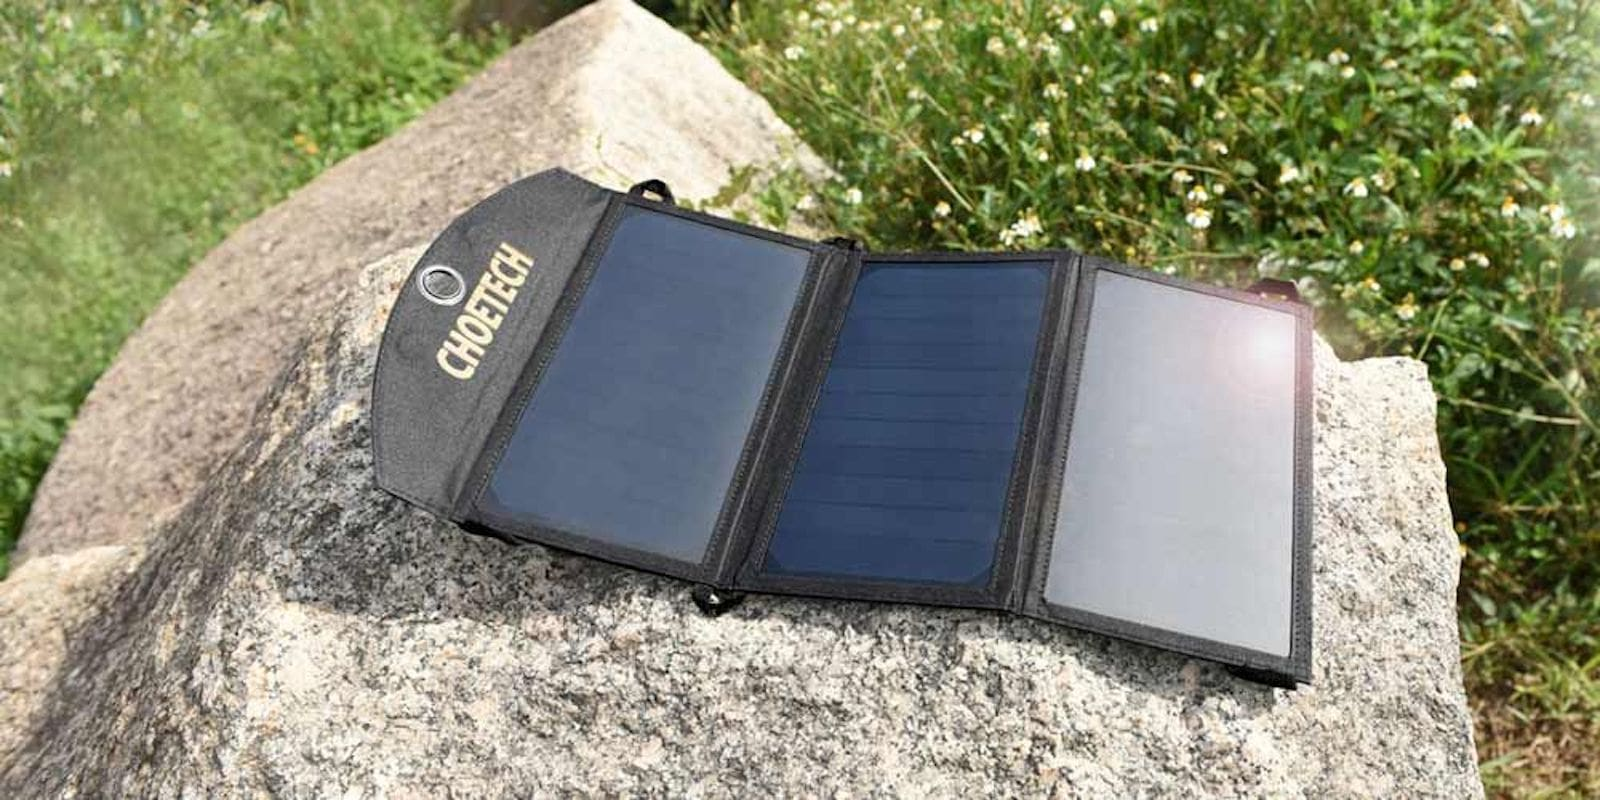 This tough, lightweight, foldable solar charger can charge up two USB devices at once.